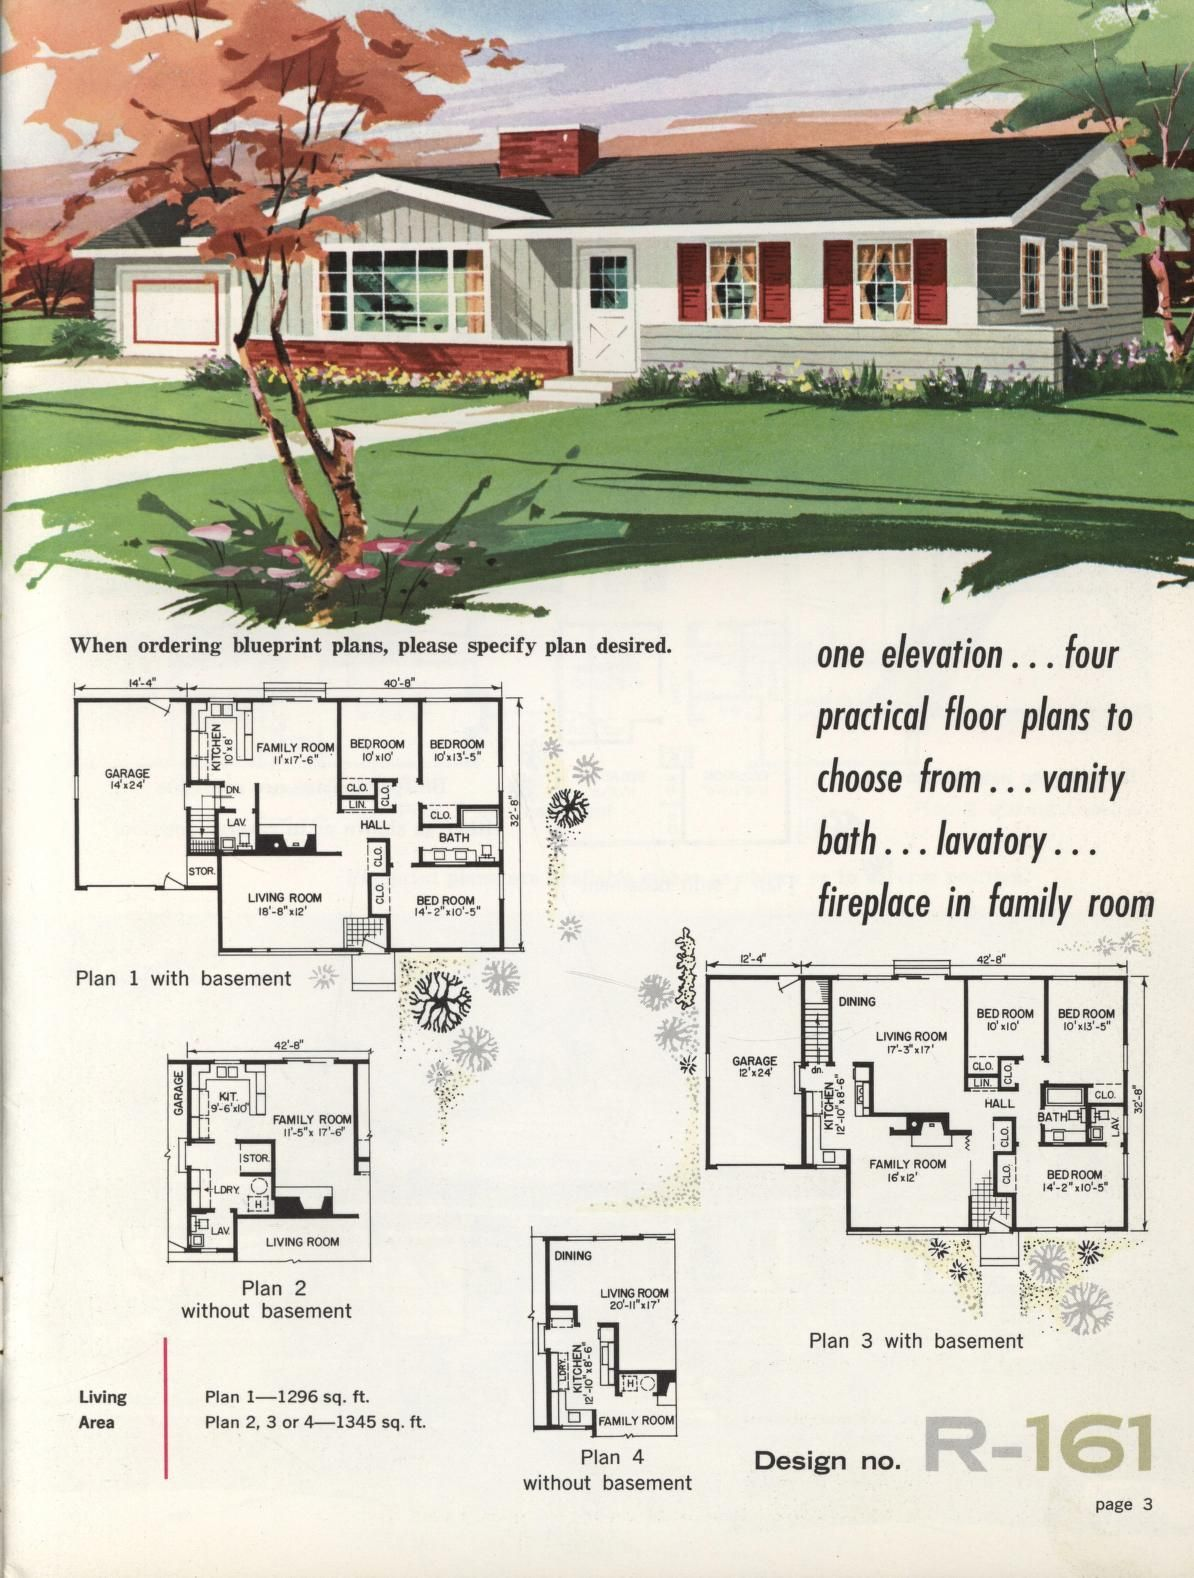 Town Country Ranch Homes National Plan Service Inc Free Download Borrow And Streaming Internet Archive House Blueprints Ranch House Plans Ranch Style House Plans